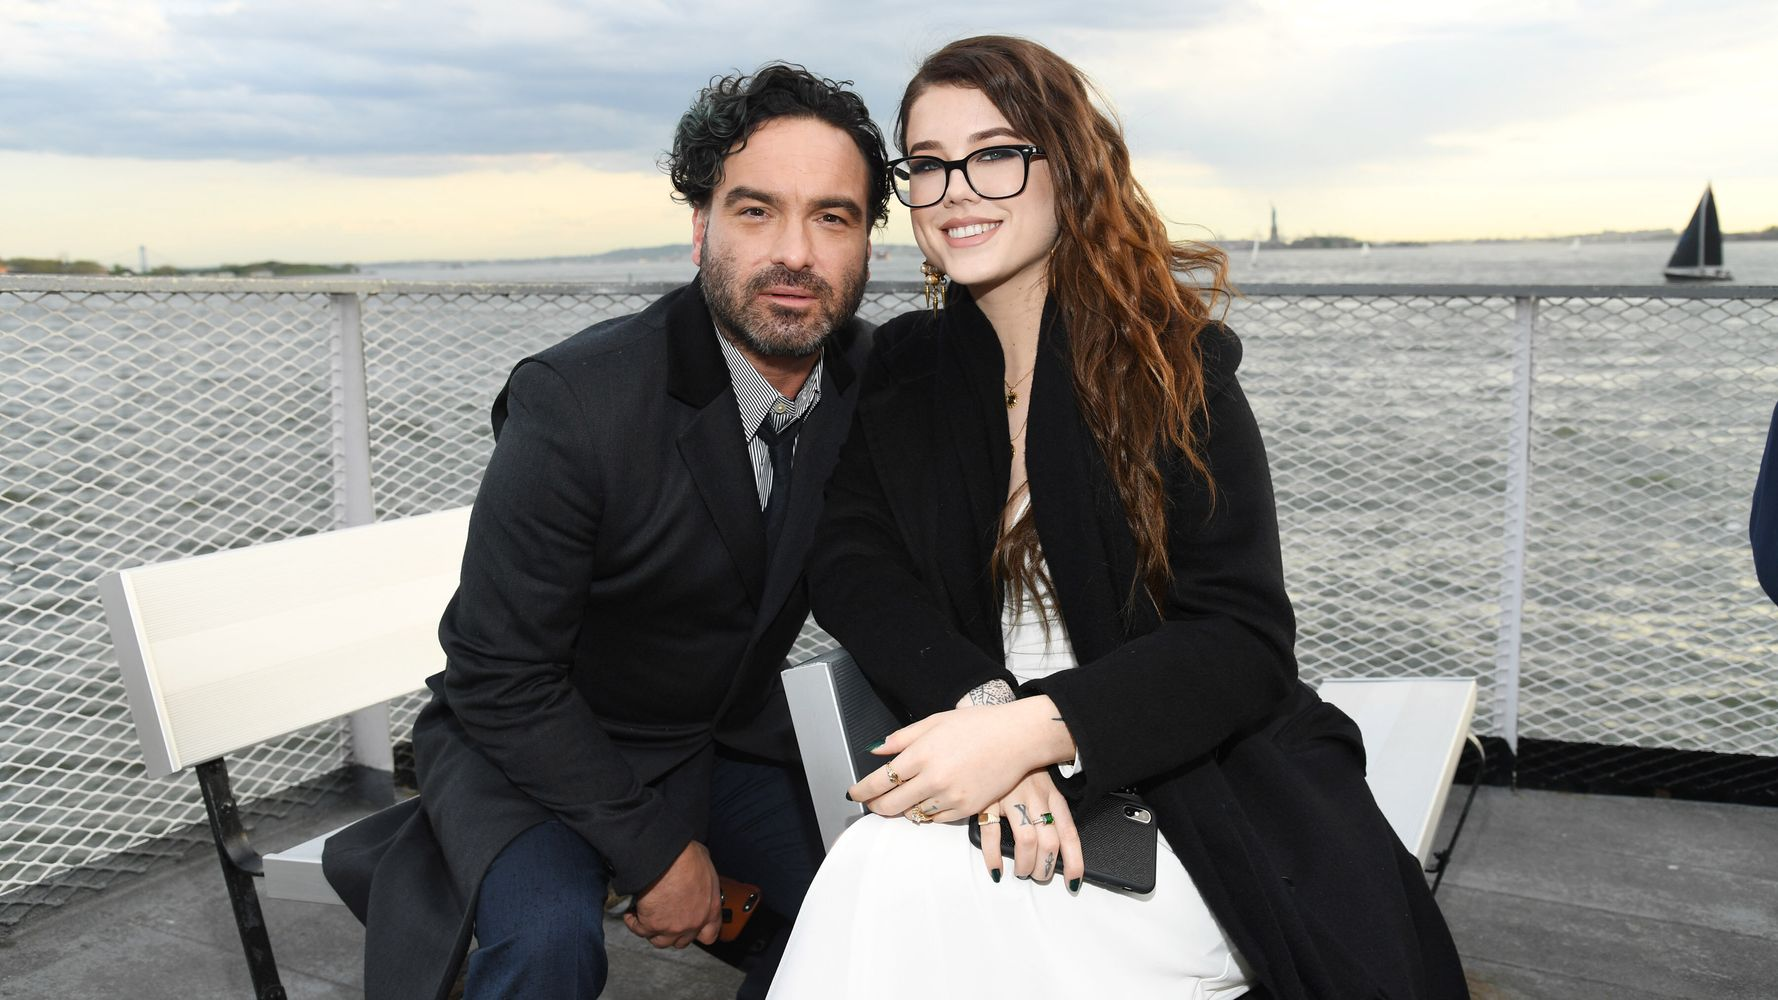 Johnny Galecki, Alaina Meyer Split, People Reports